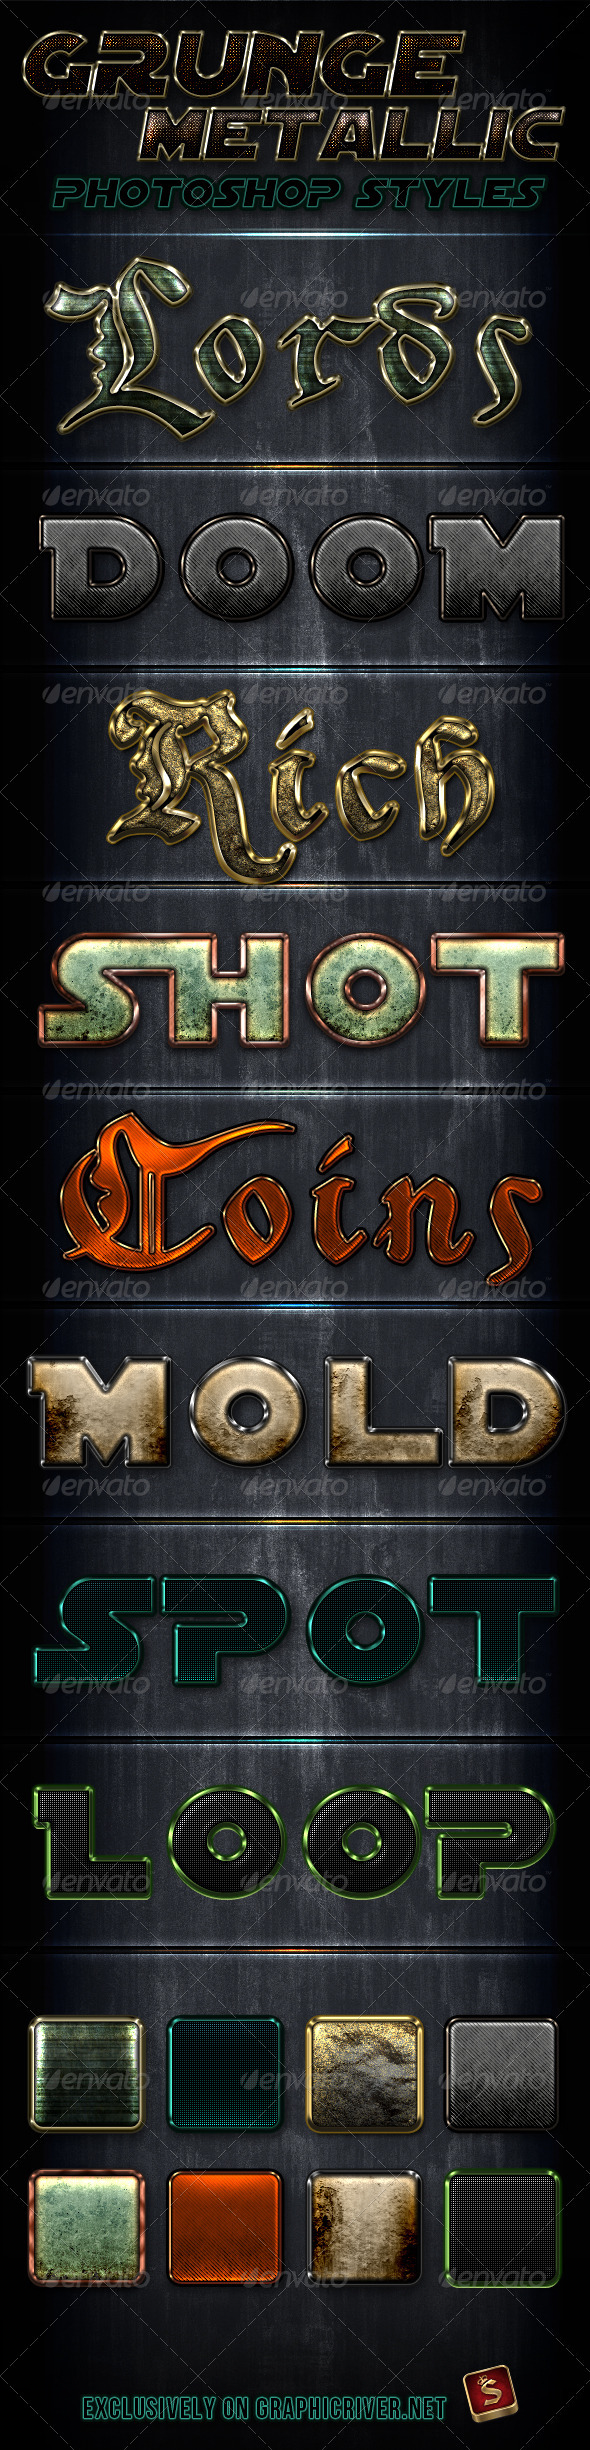 Metallic Grunge Photoshop Styles - Text Effects Styles